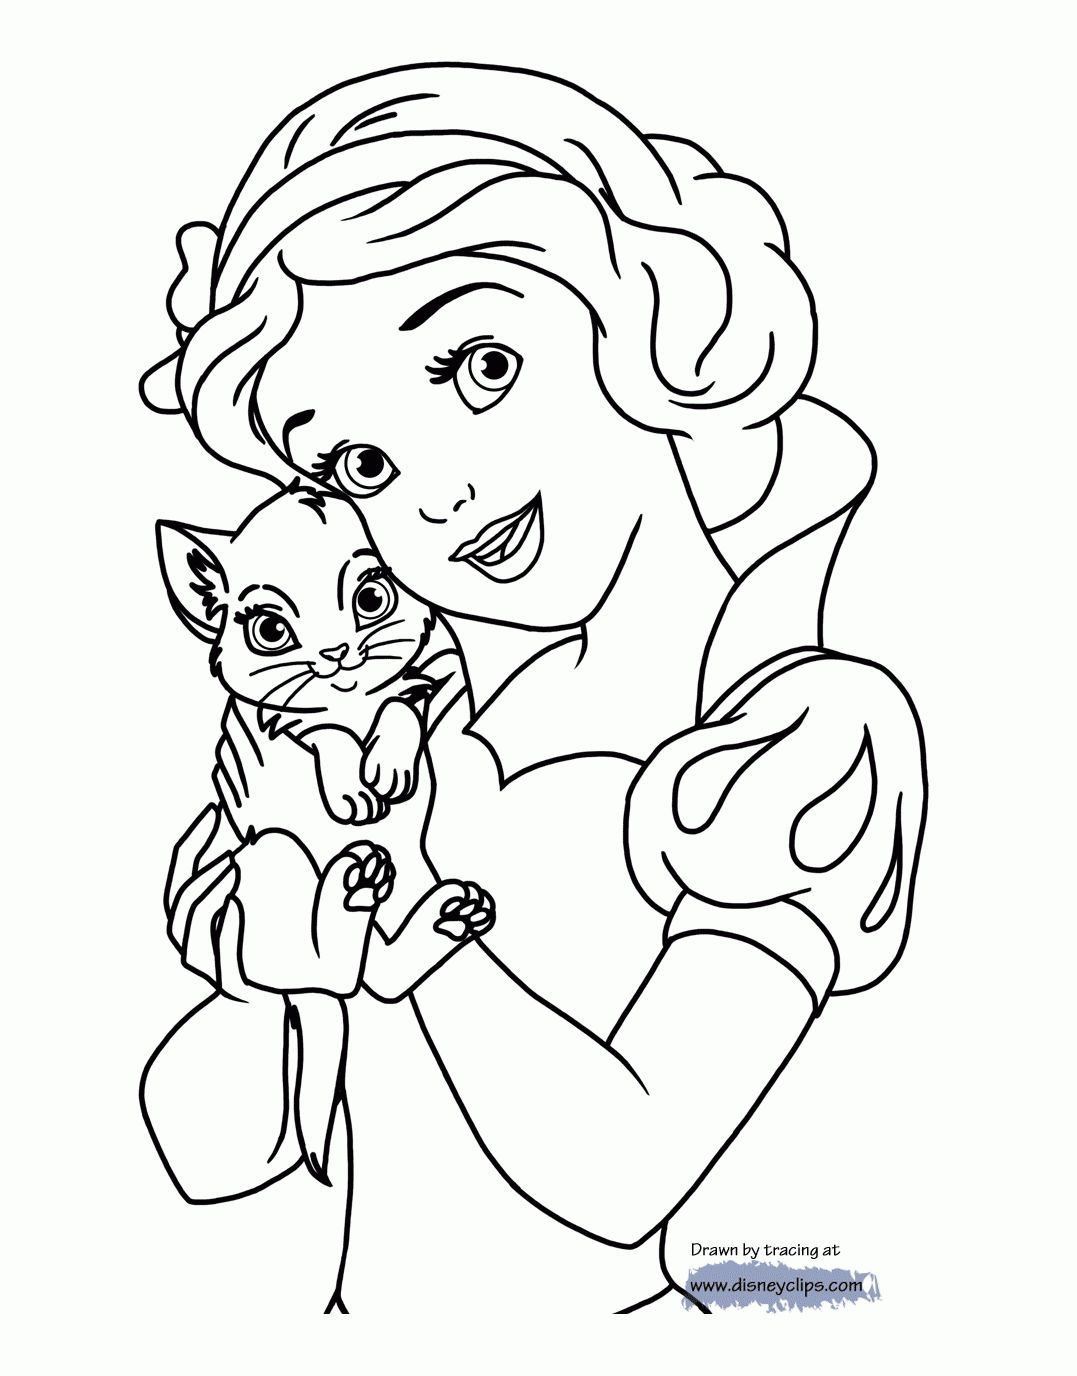 Snow White And The Seven Dwarfs Coloring Pages 41 Jpg 1077 1376